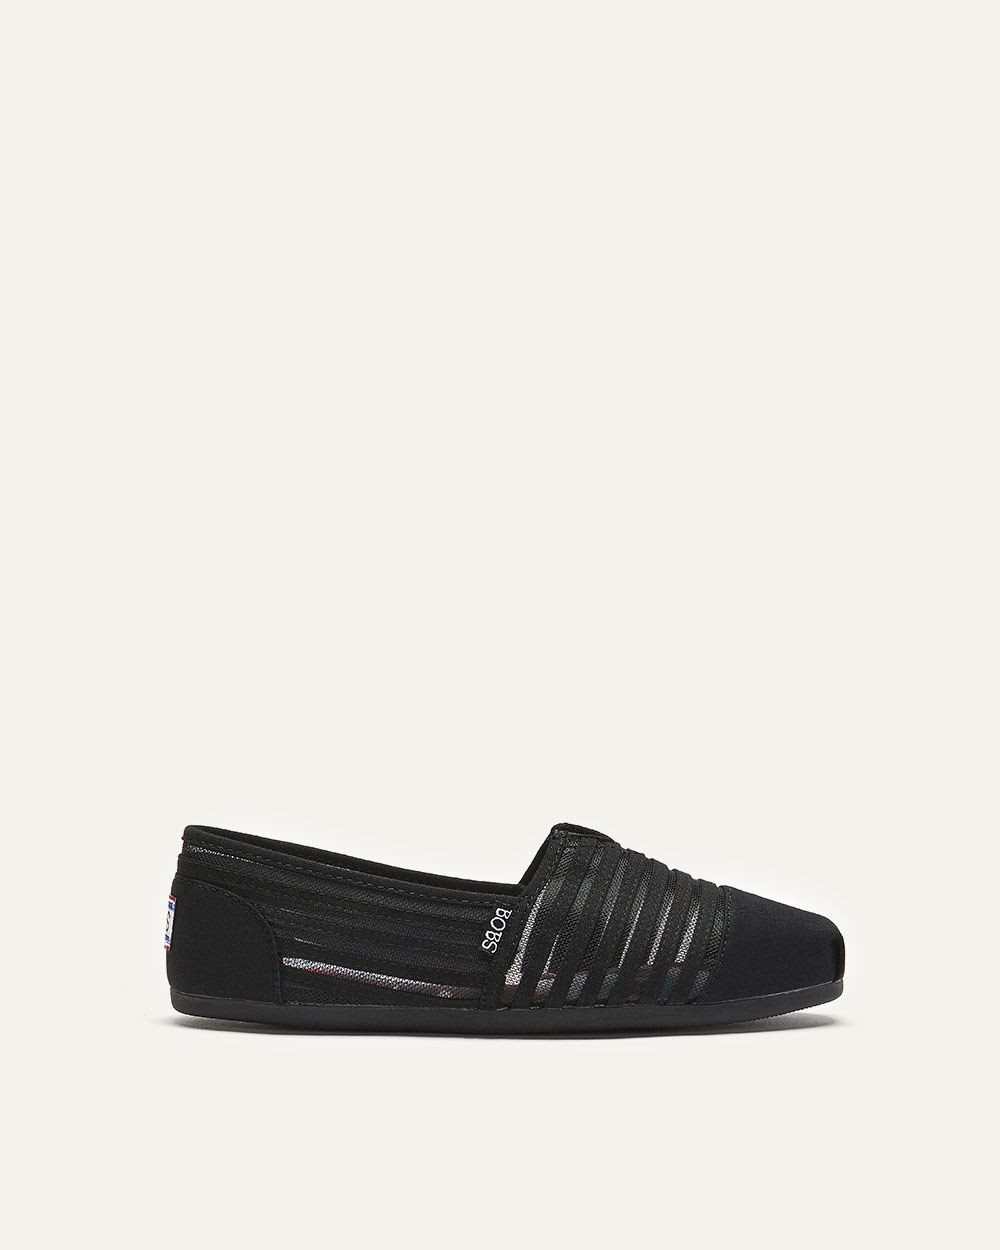 Wide Canvas & Mesh Slip-On BOBS Loafers - Skechers